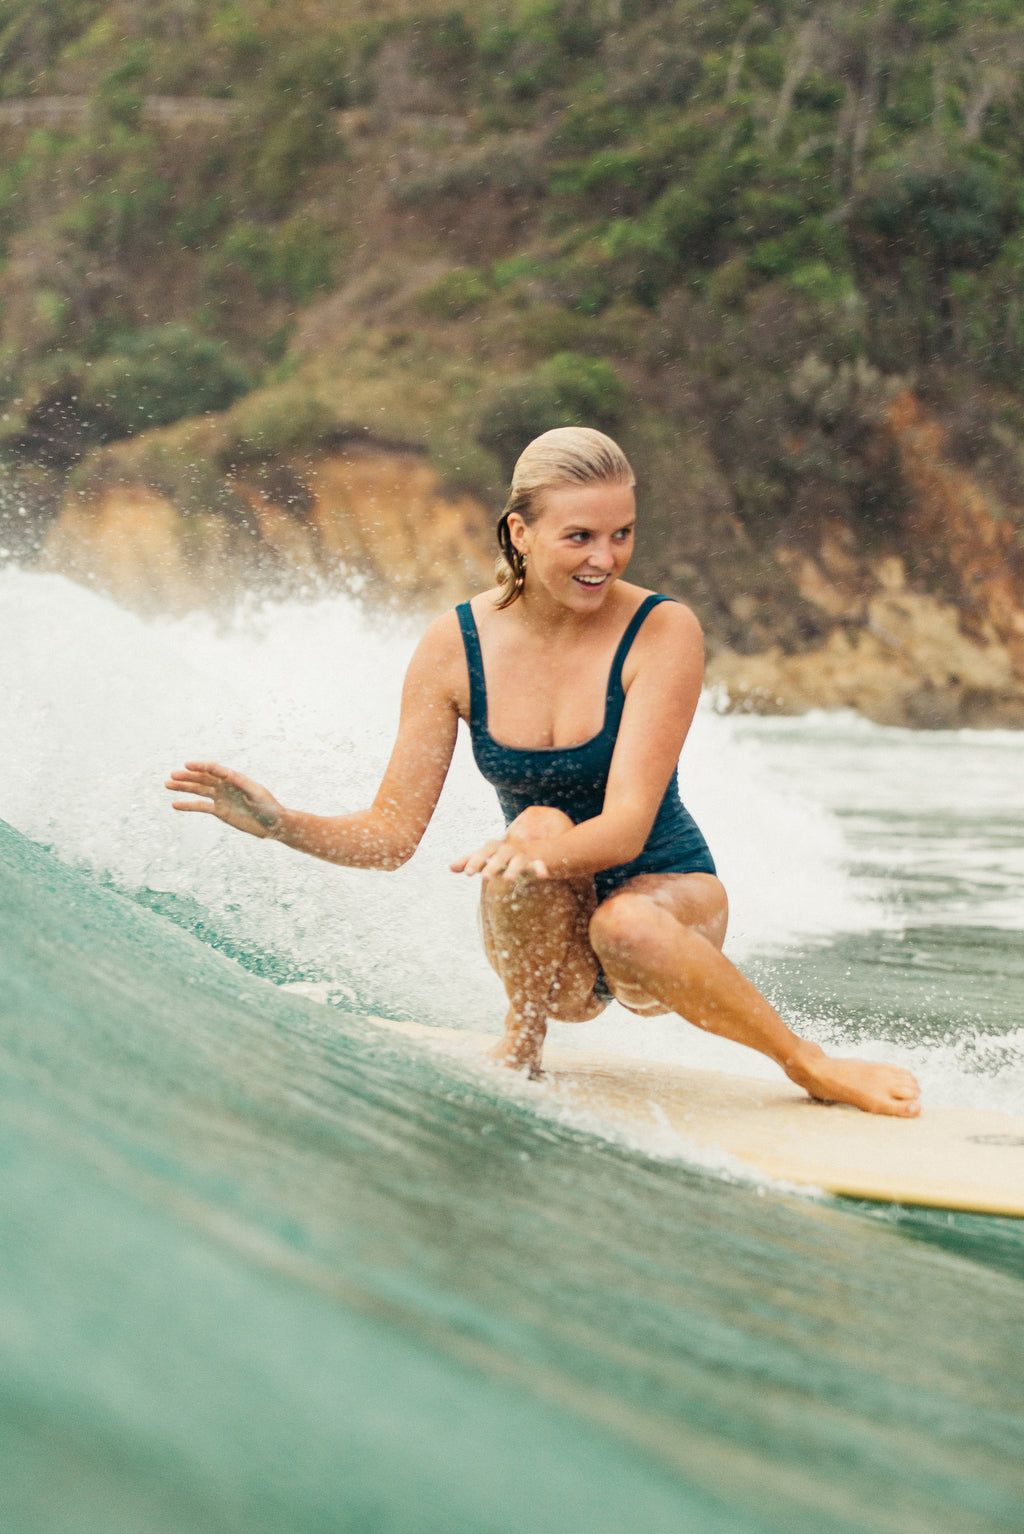 woman crouched down surfing wearing one piece surf swimsuit in bottle green